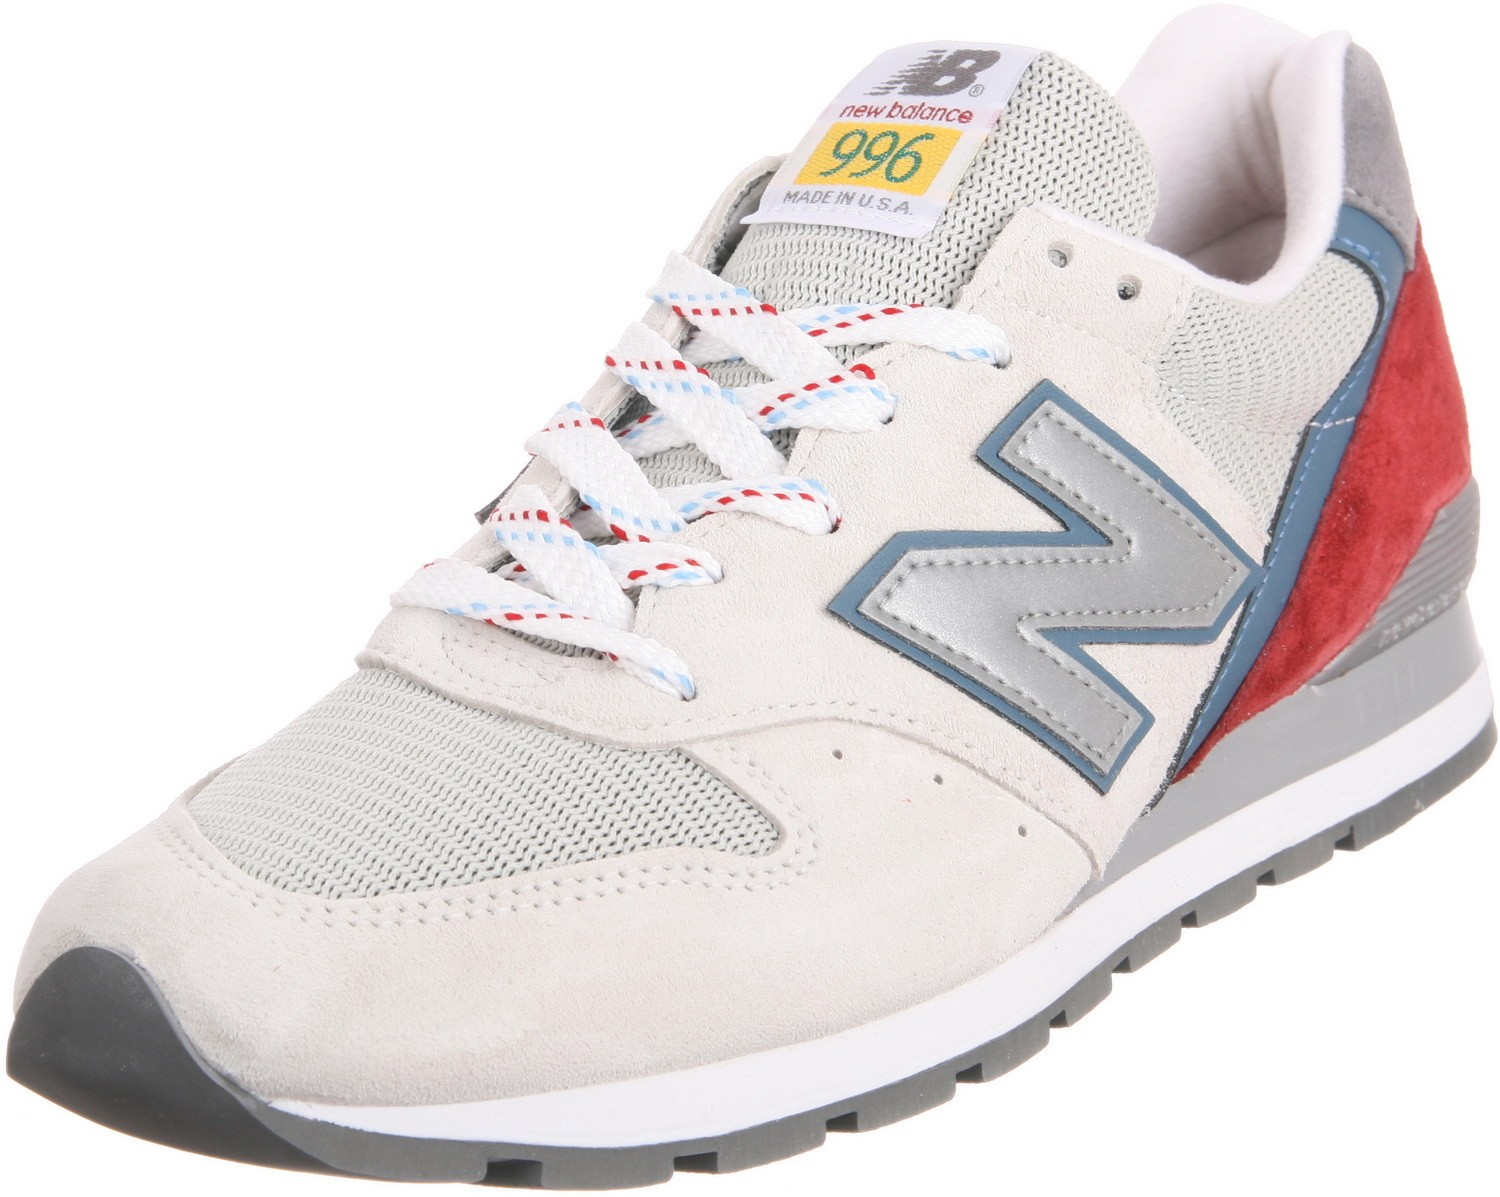 New Balance 996 National Parks Hommes Sneakers Tan Avec Aster Bleu/Rouge M996PD